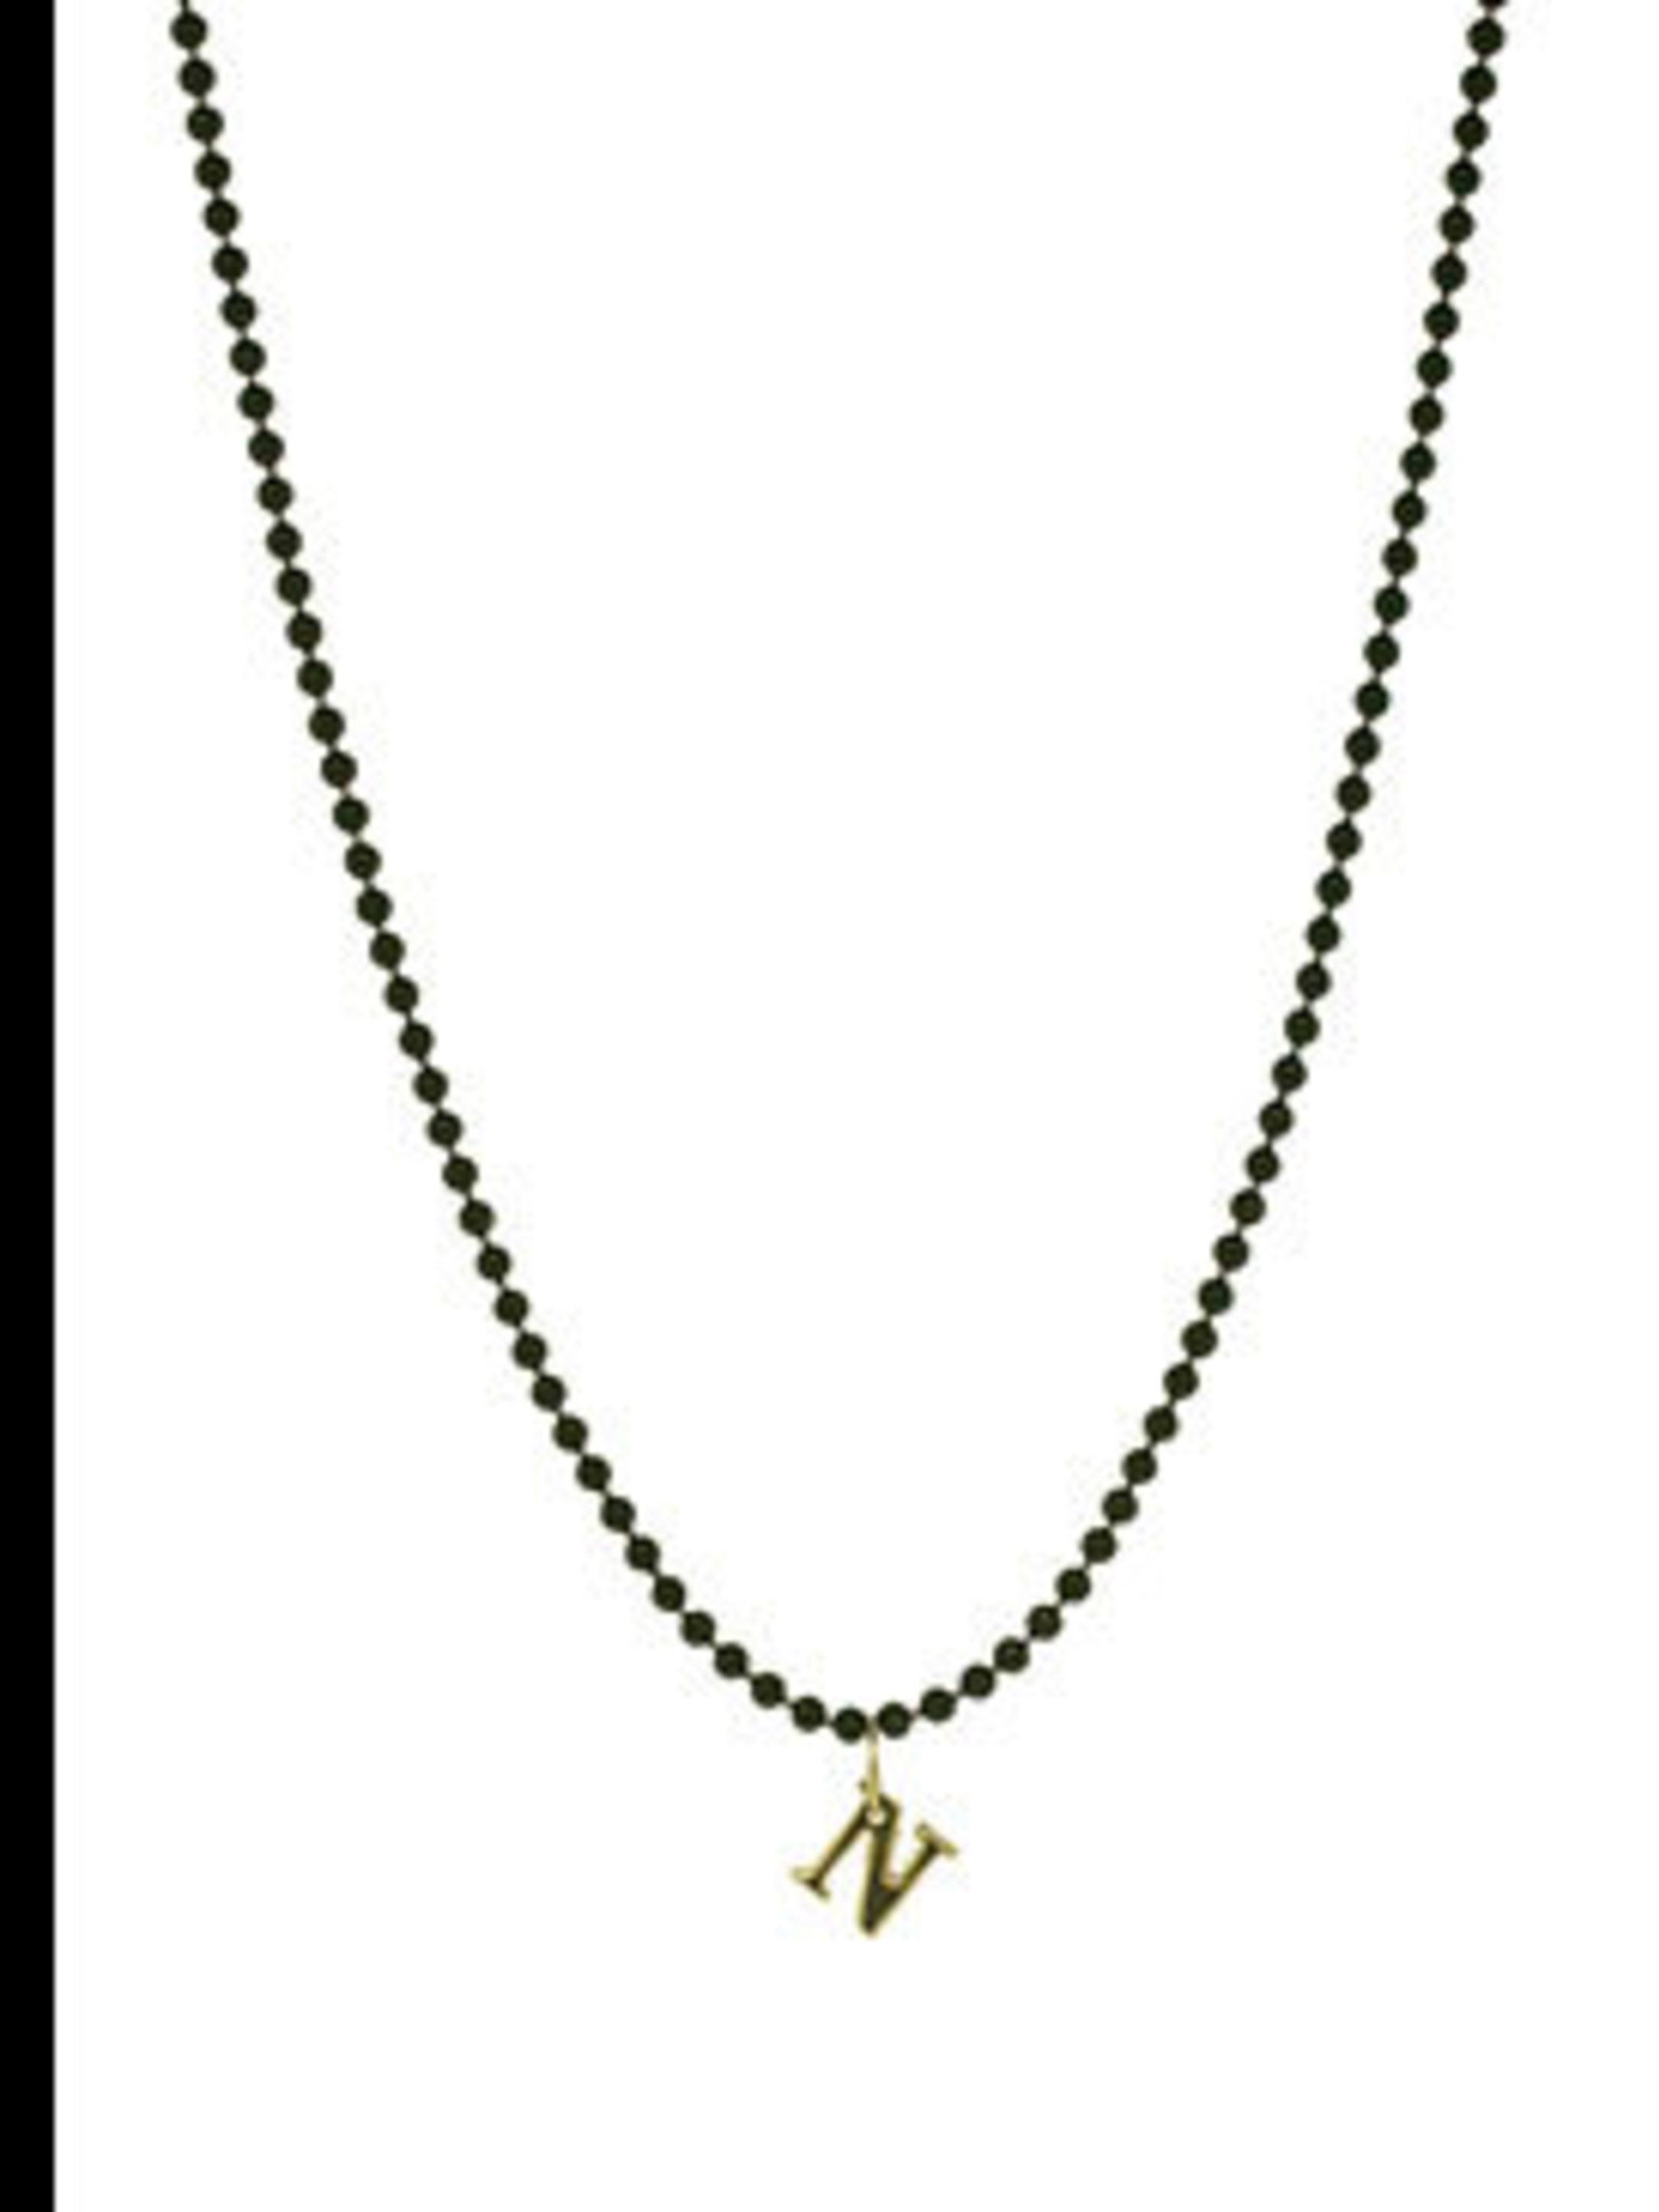 """<p>Letter necklace, £45, by Allumer at <a href=""""http://www.kabiri.co.uk/jewellery/necklaces/letter_charmn"""">Kabiri</a></p>"""